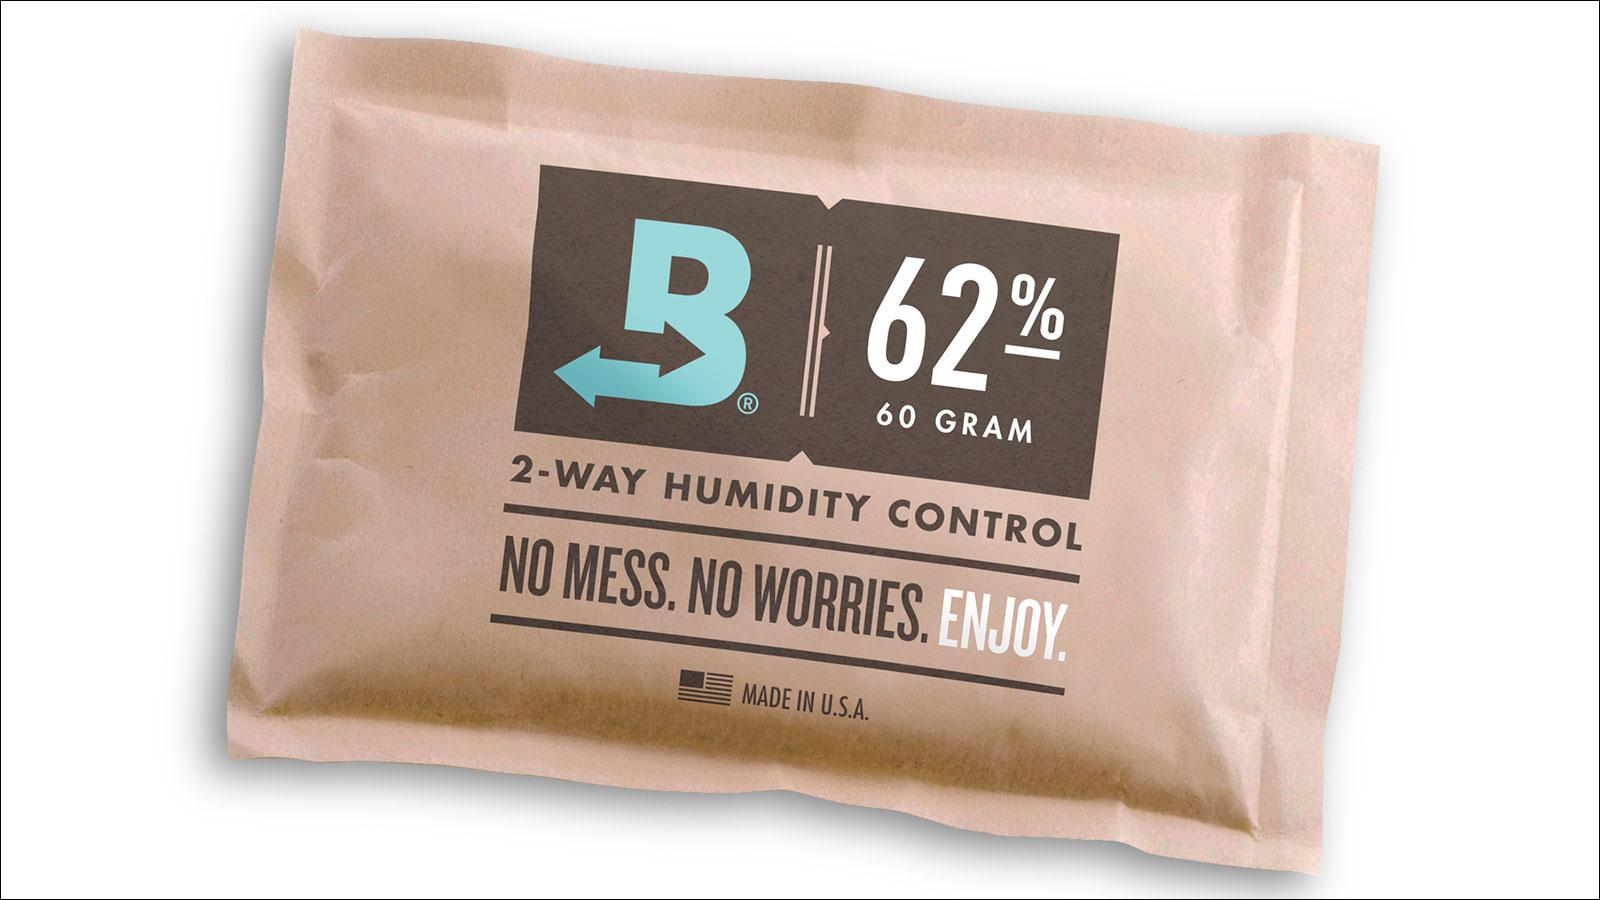 Boveda has made its name in the cigar industry with its humidity packs that can be easily placed in sealable bags to provide adequate, portable humidification.